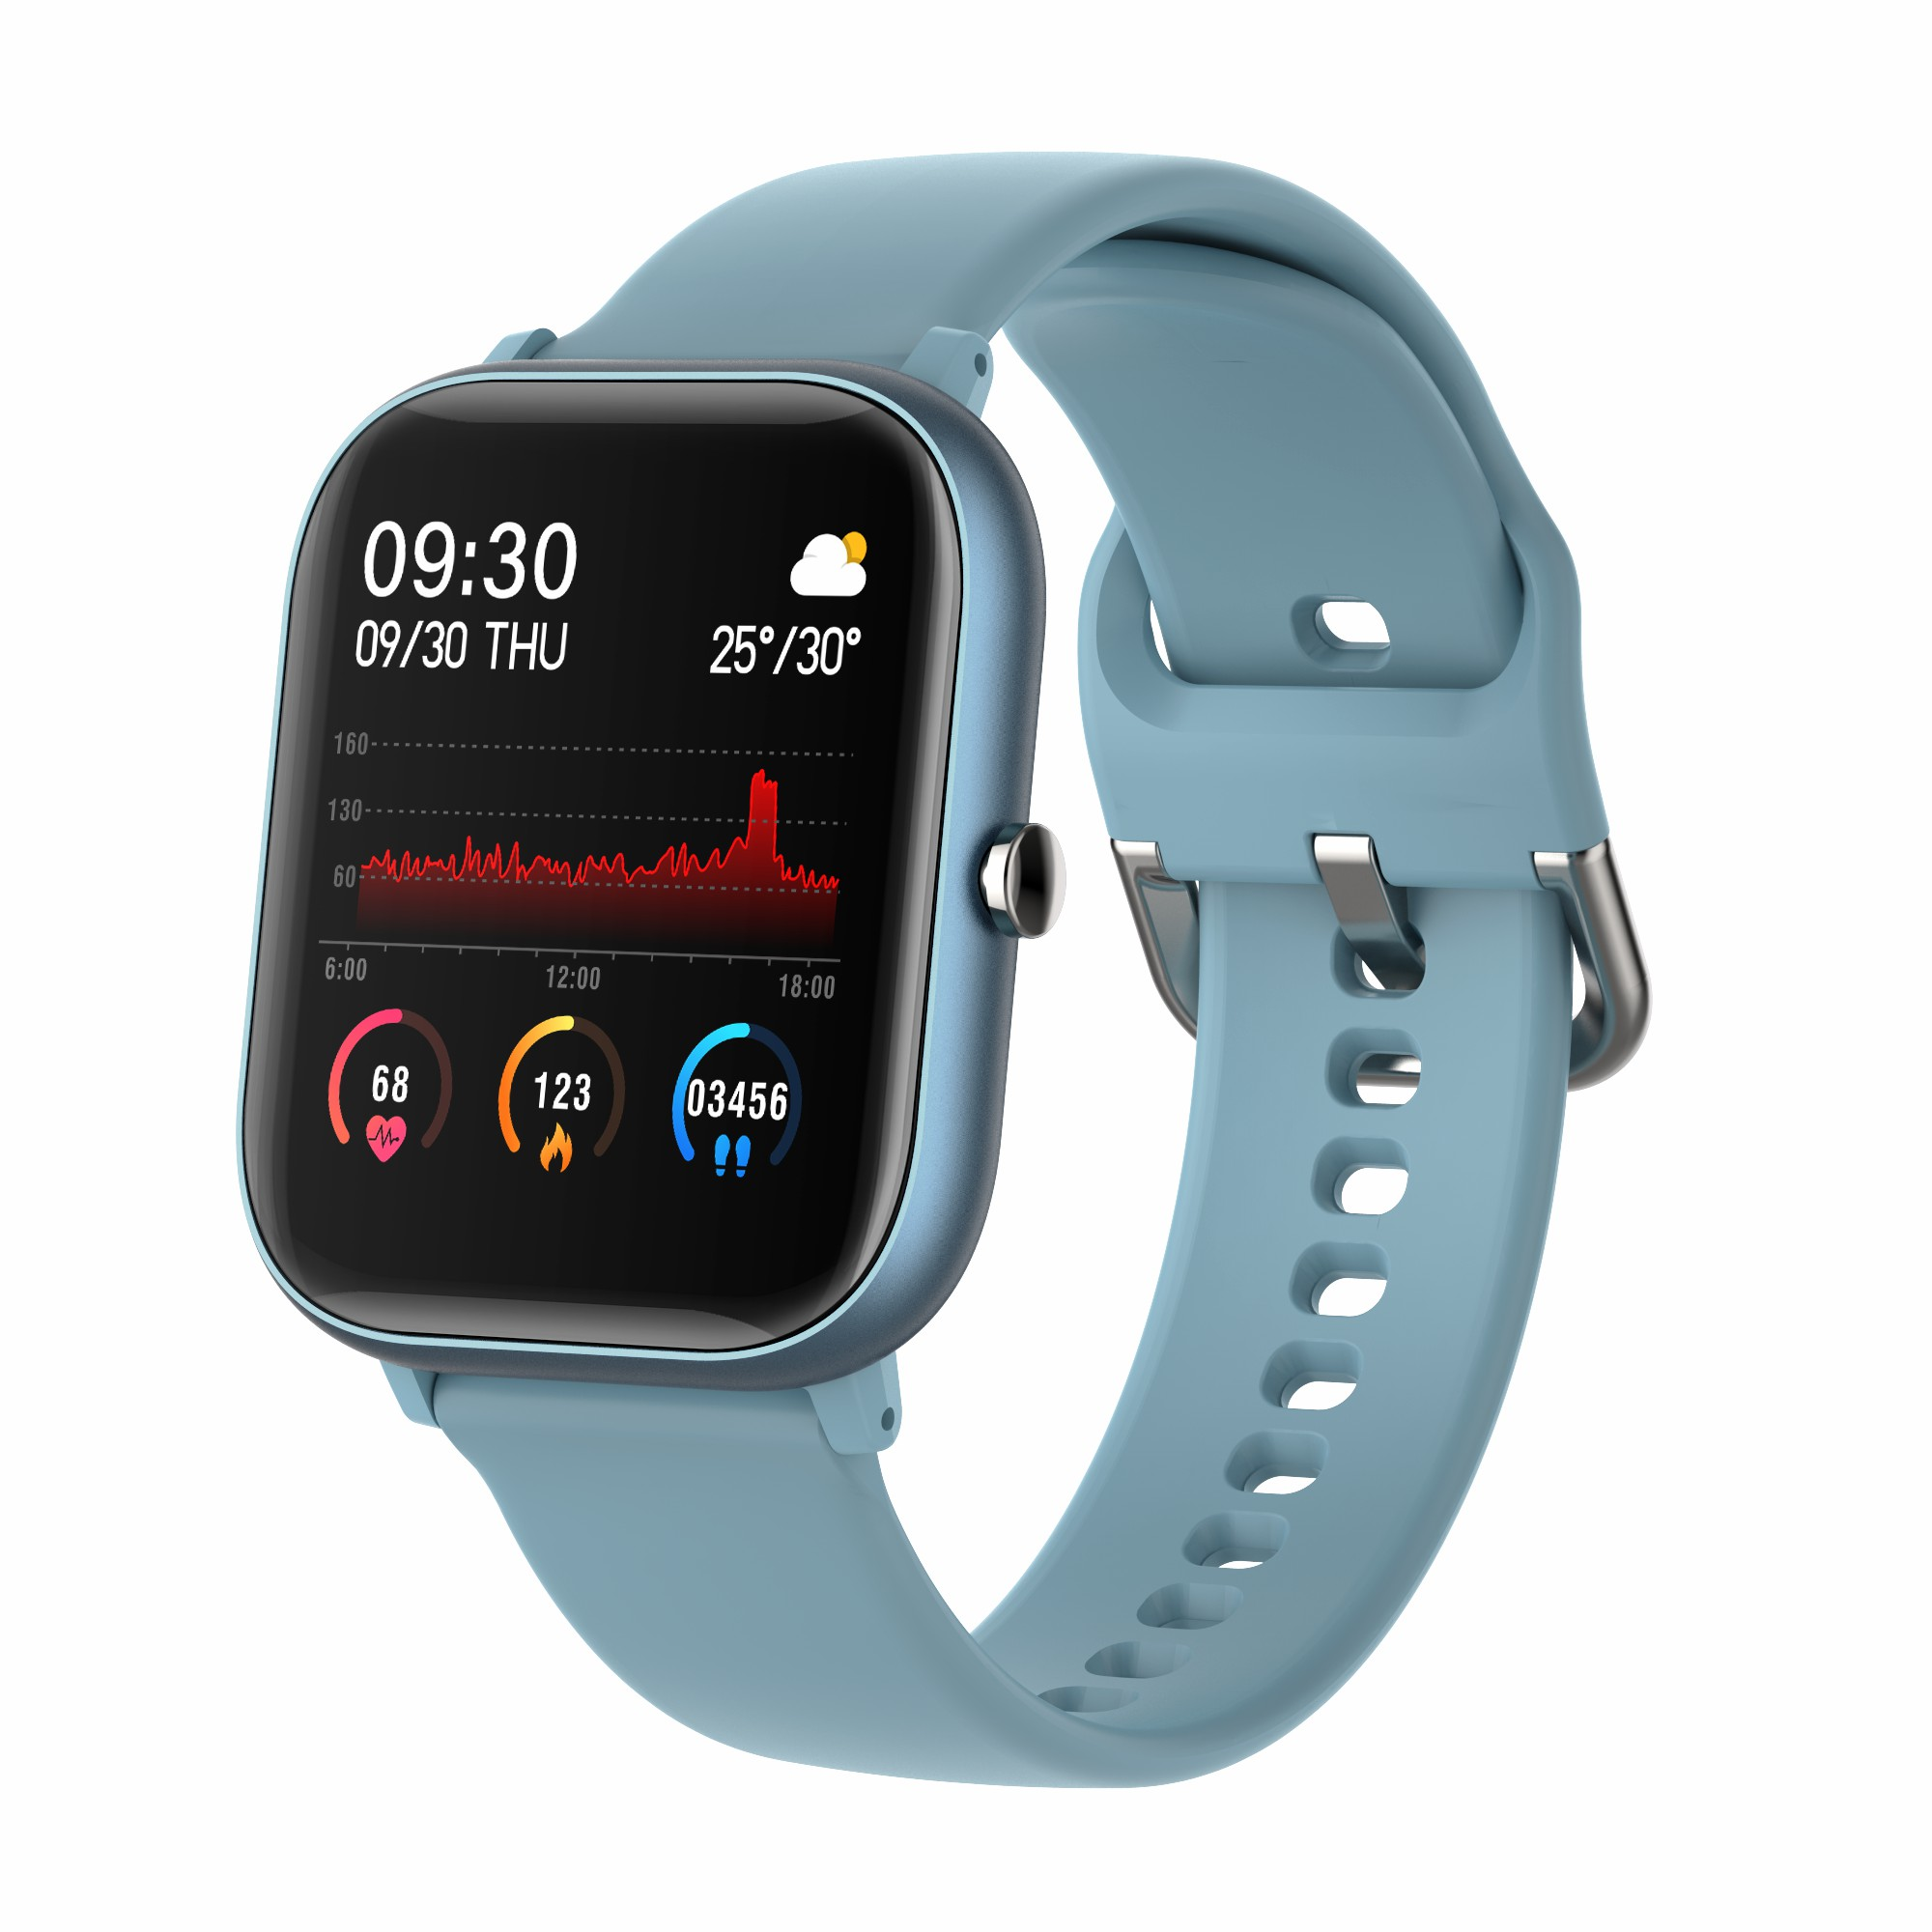 Light Blue Android Smart Watch.jpg